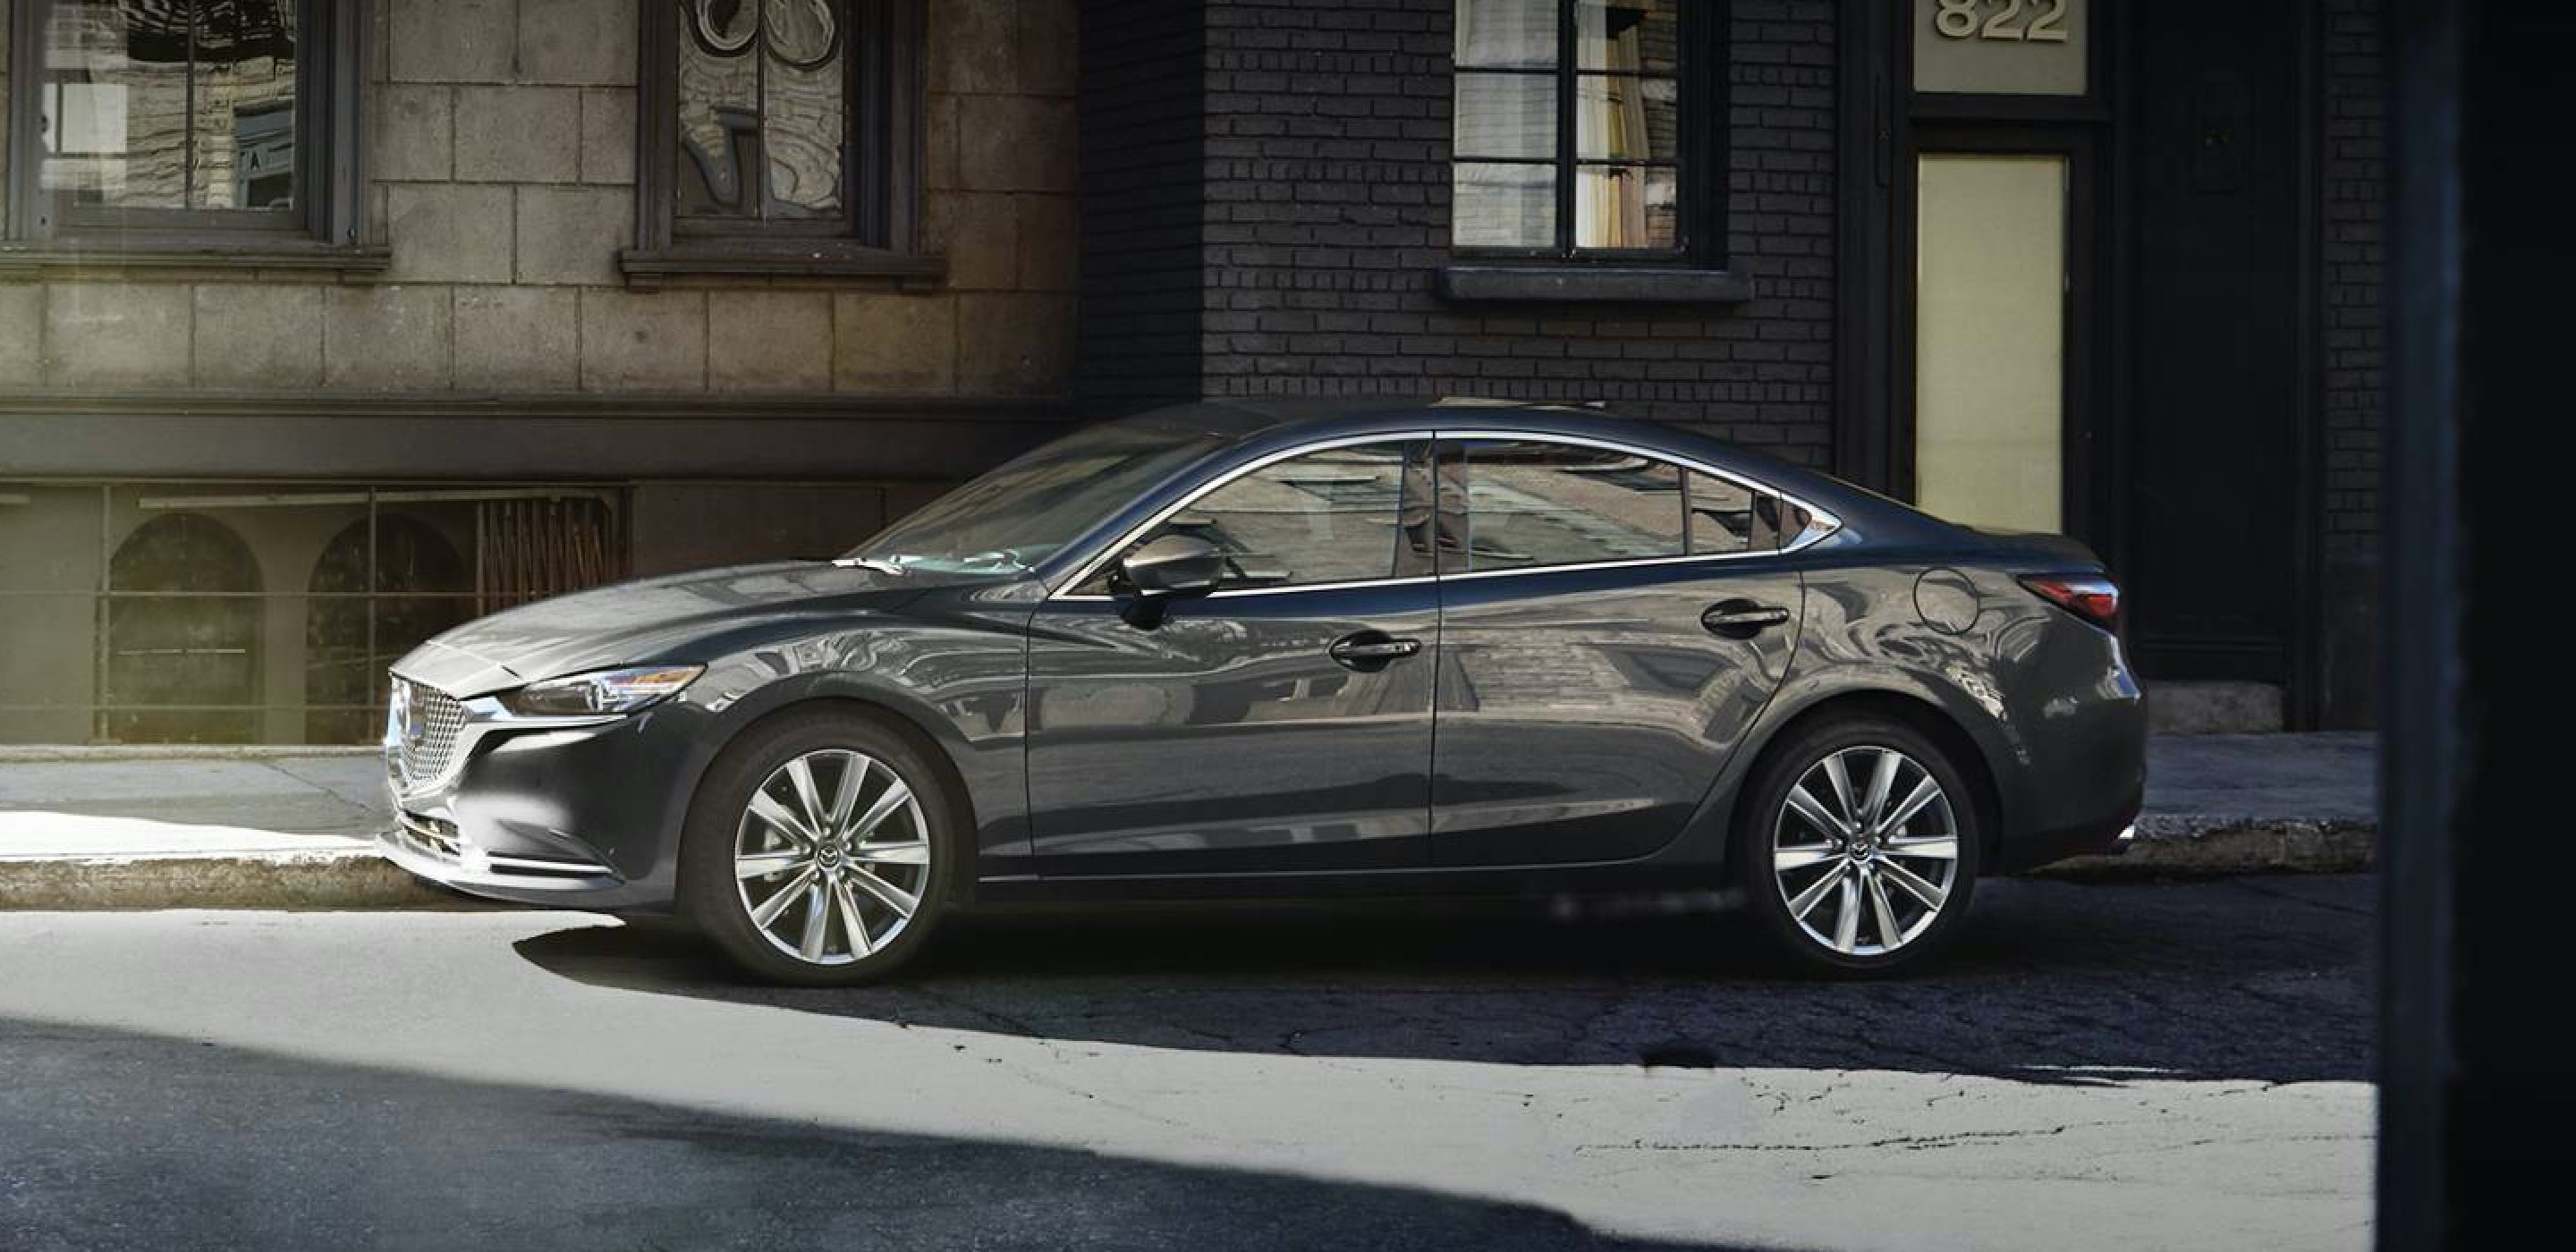 2021 Mazda6, EVERYTHING YOU WANT, AND MORE.